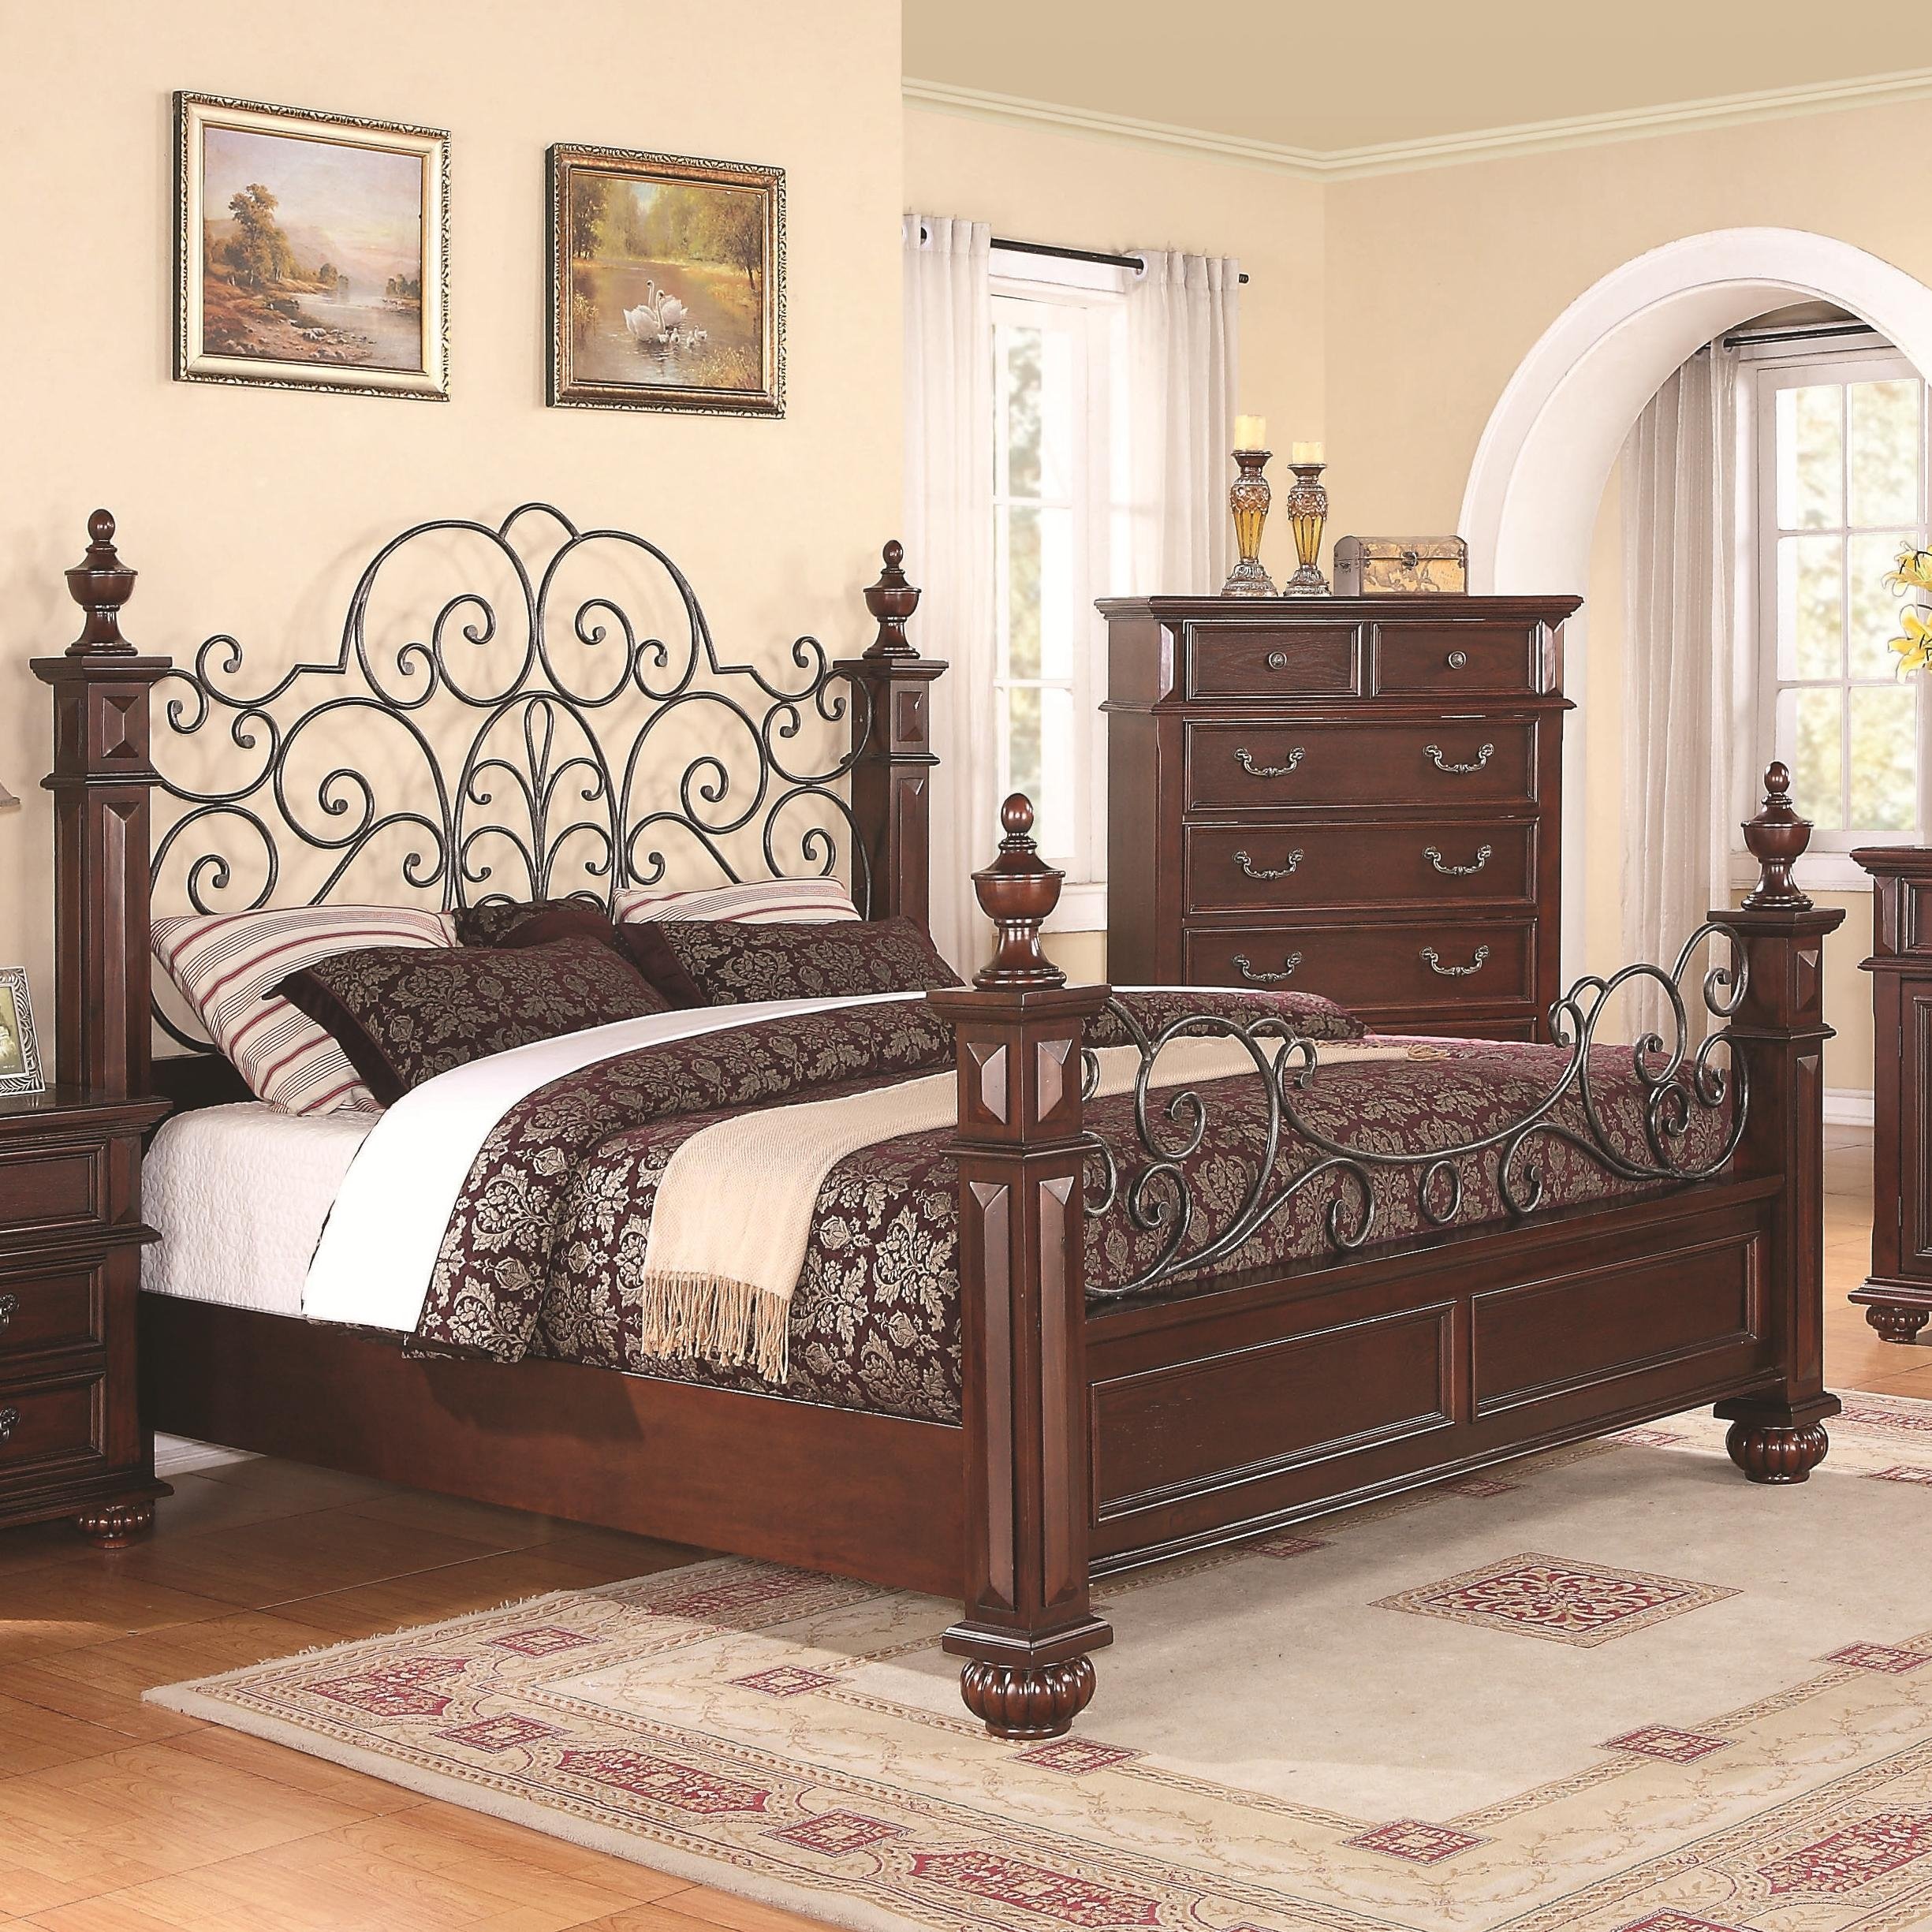 Wrought Iron And Wood Bed Frames